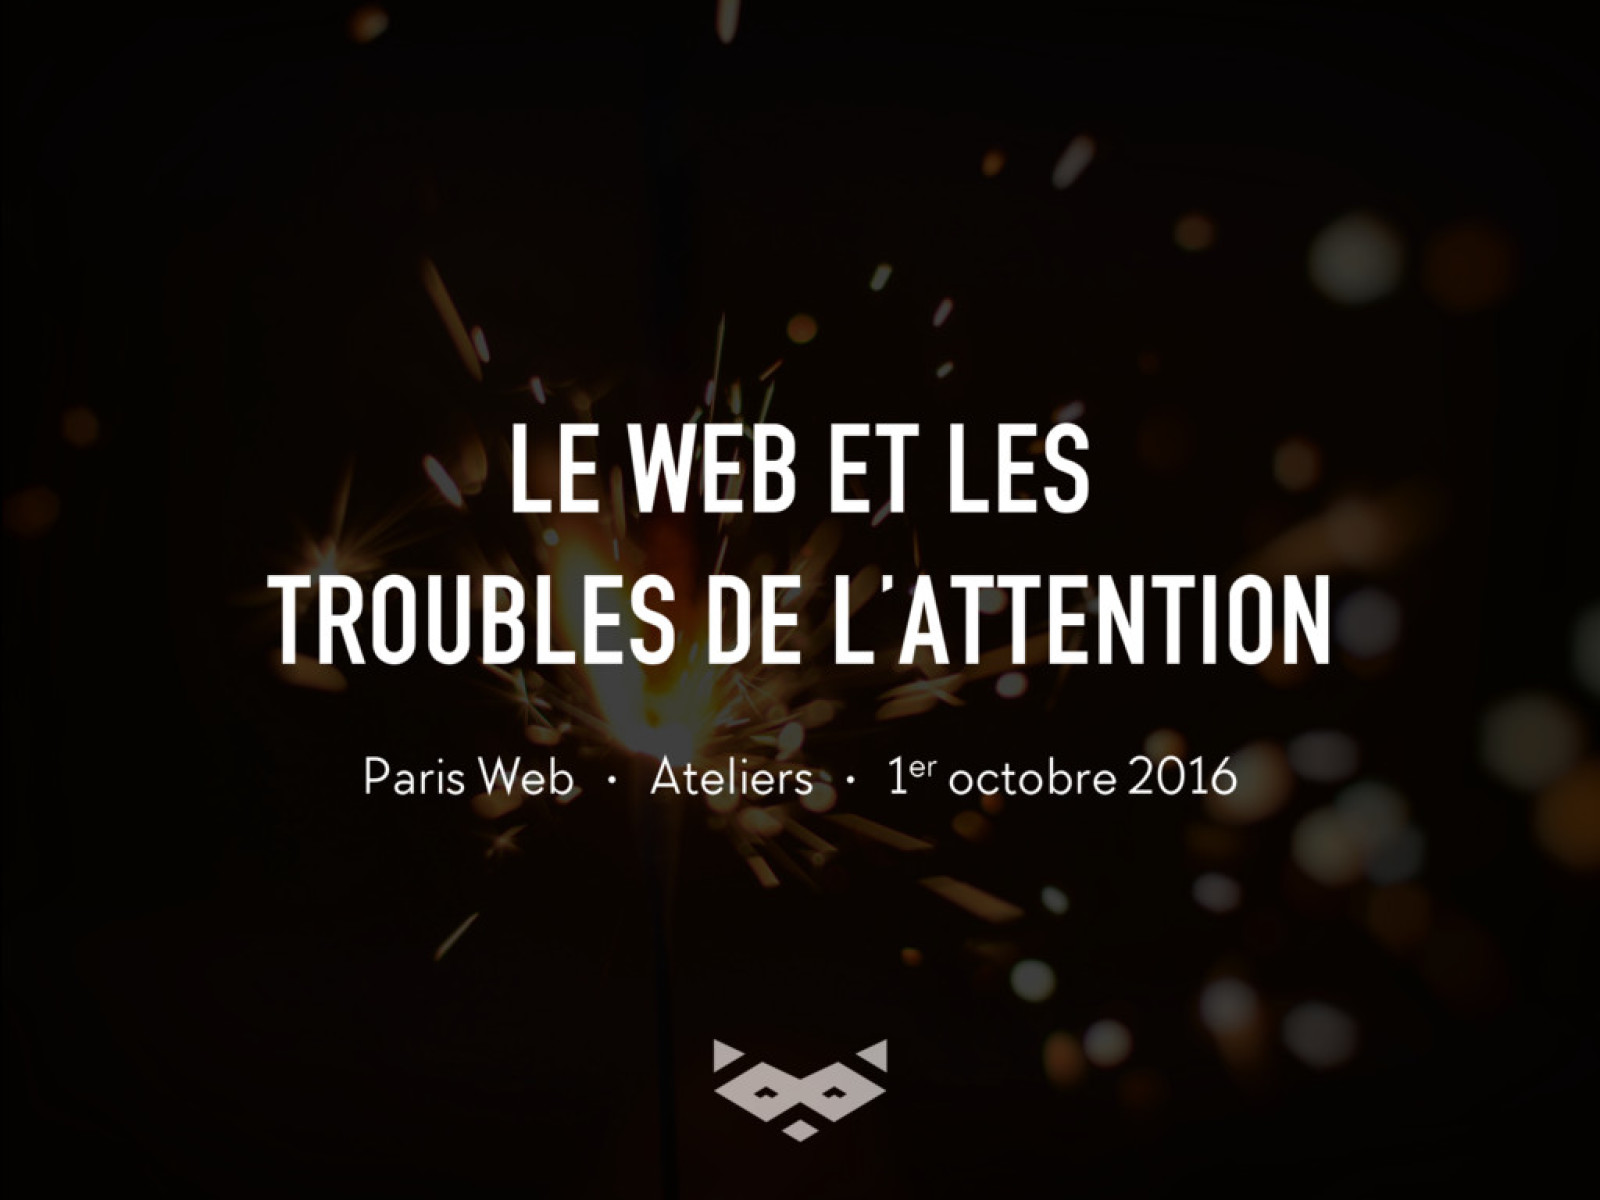 Le Web et les troubles de l'attention – Workshop